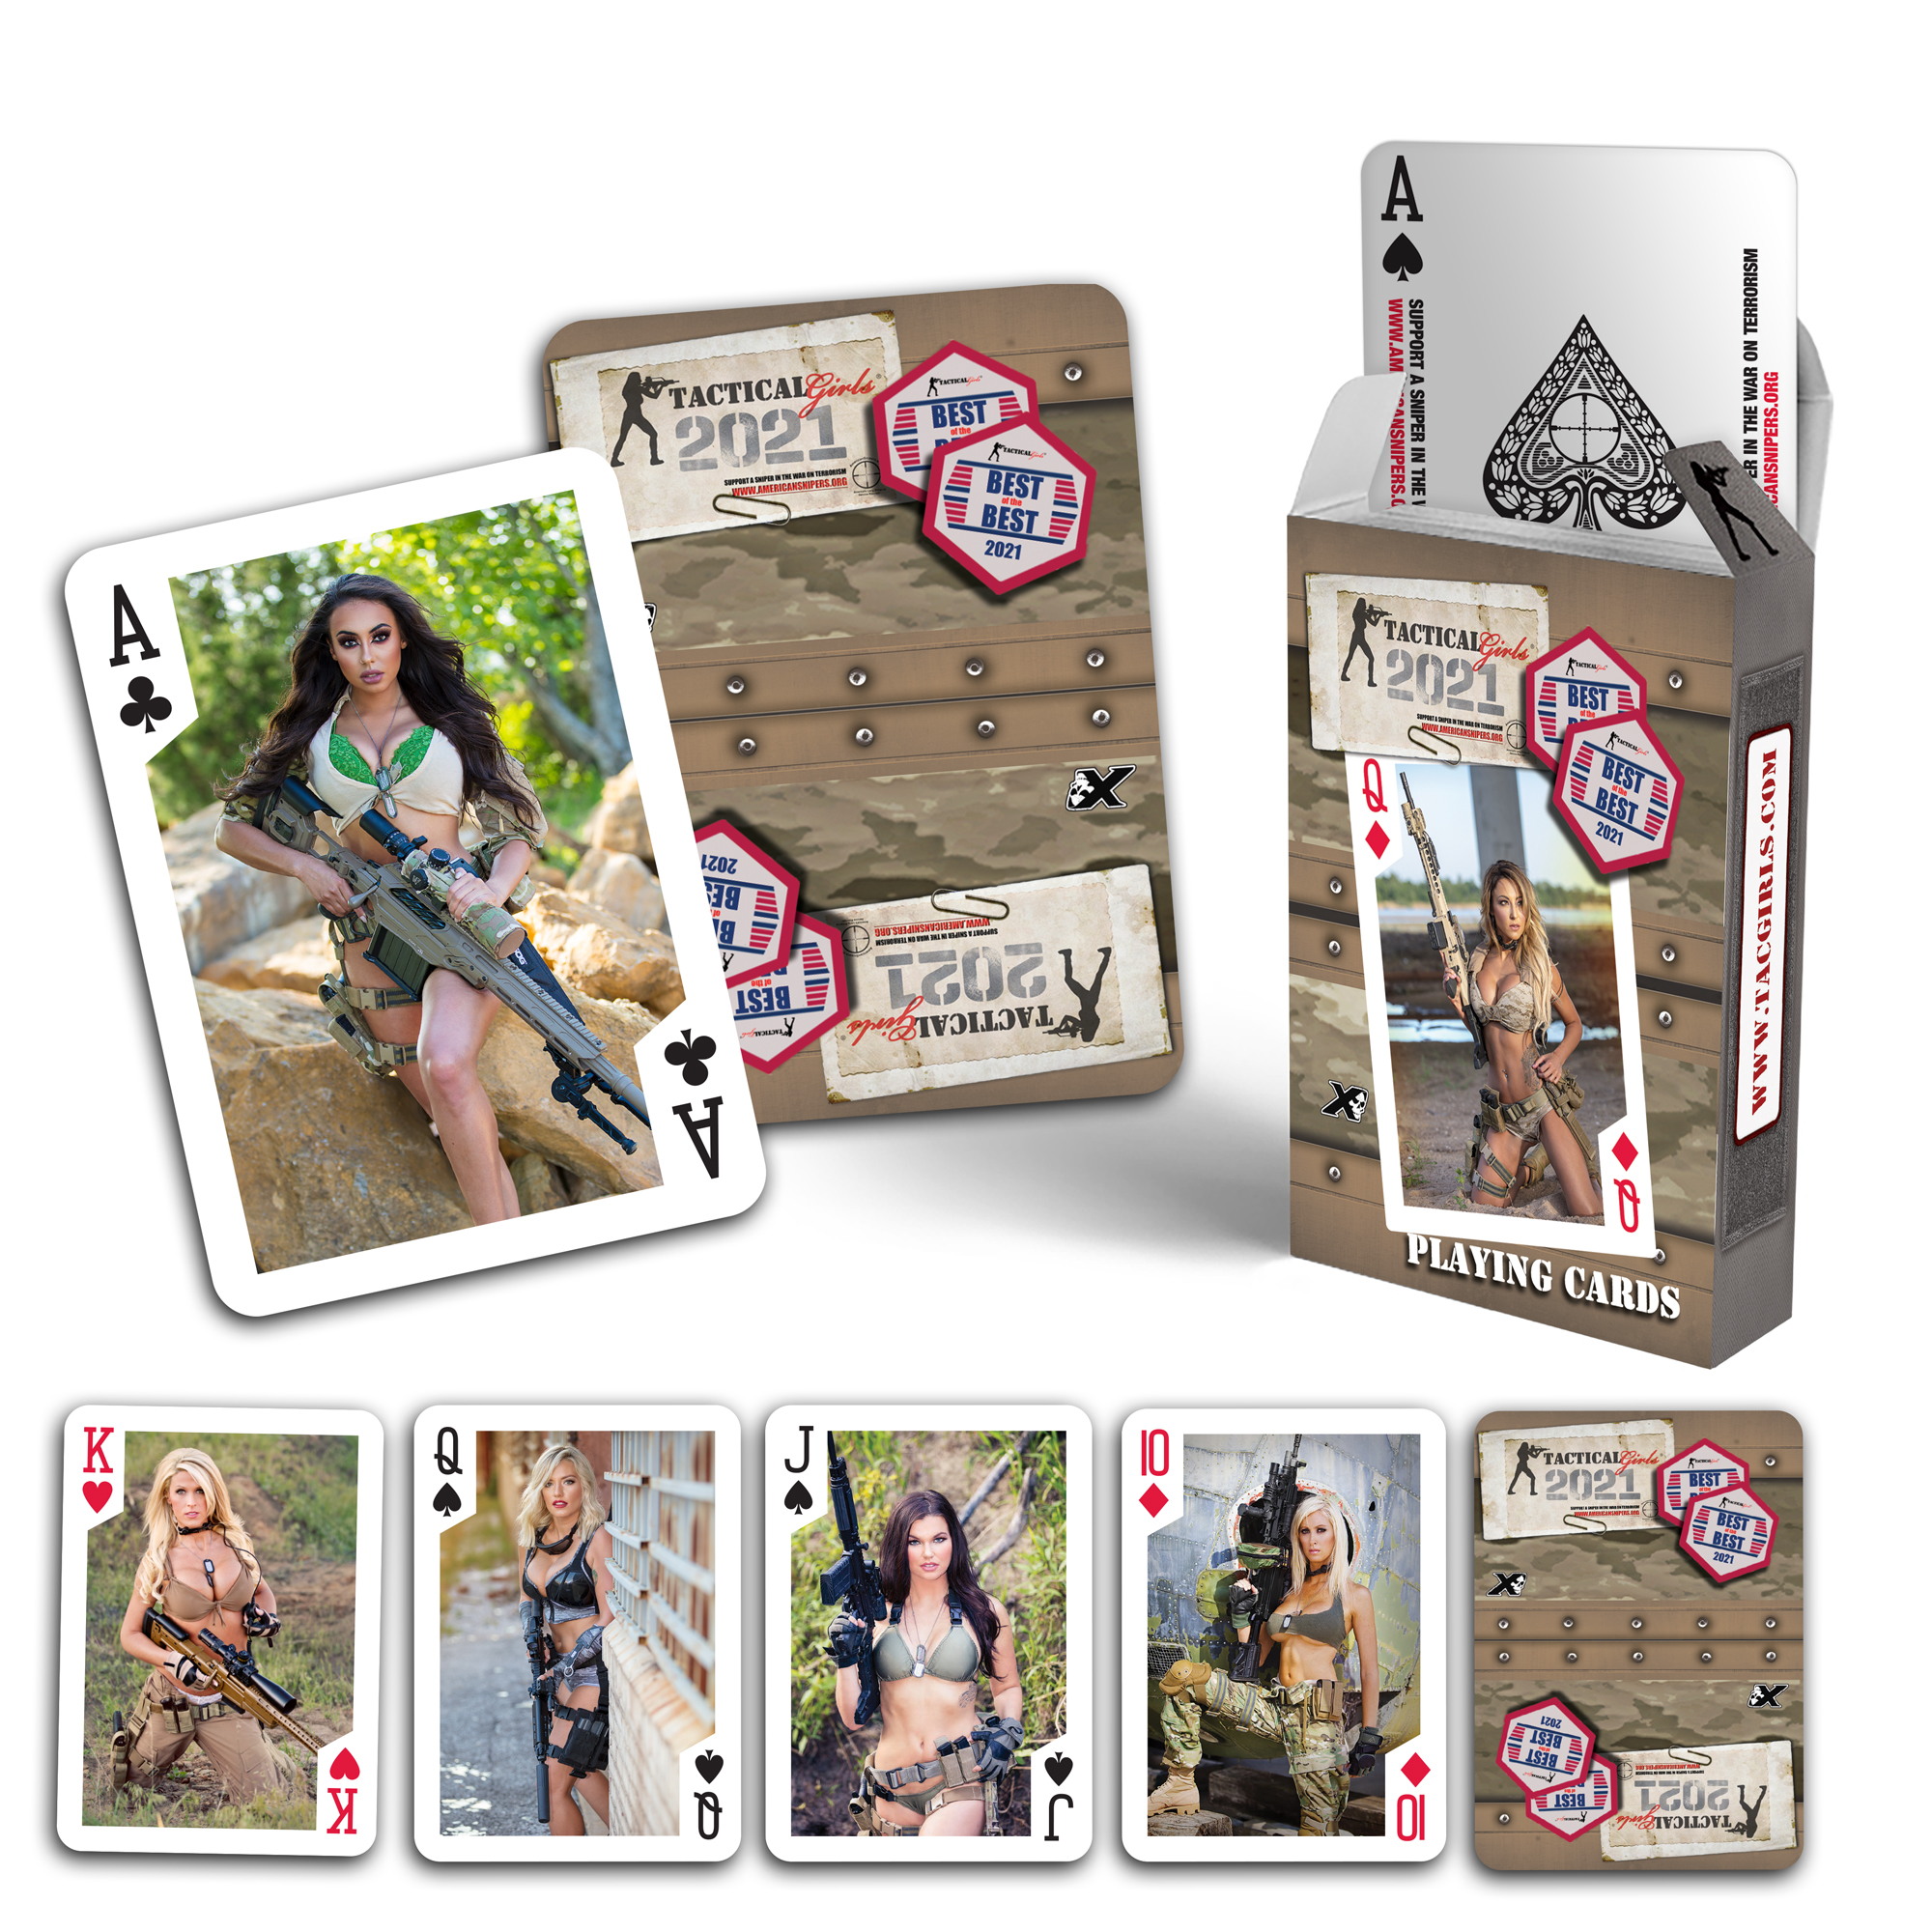 2020-tactical-girls-playing-card-master-pack-template.jpg